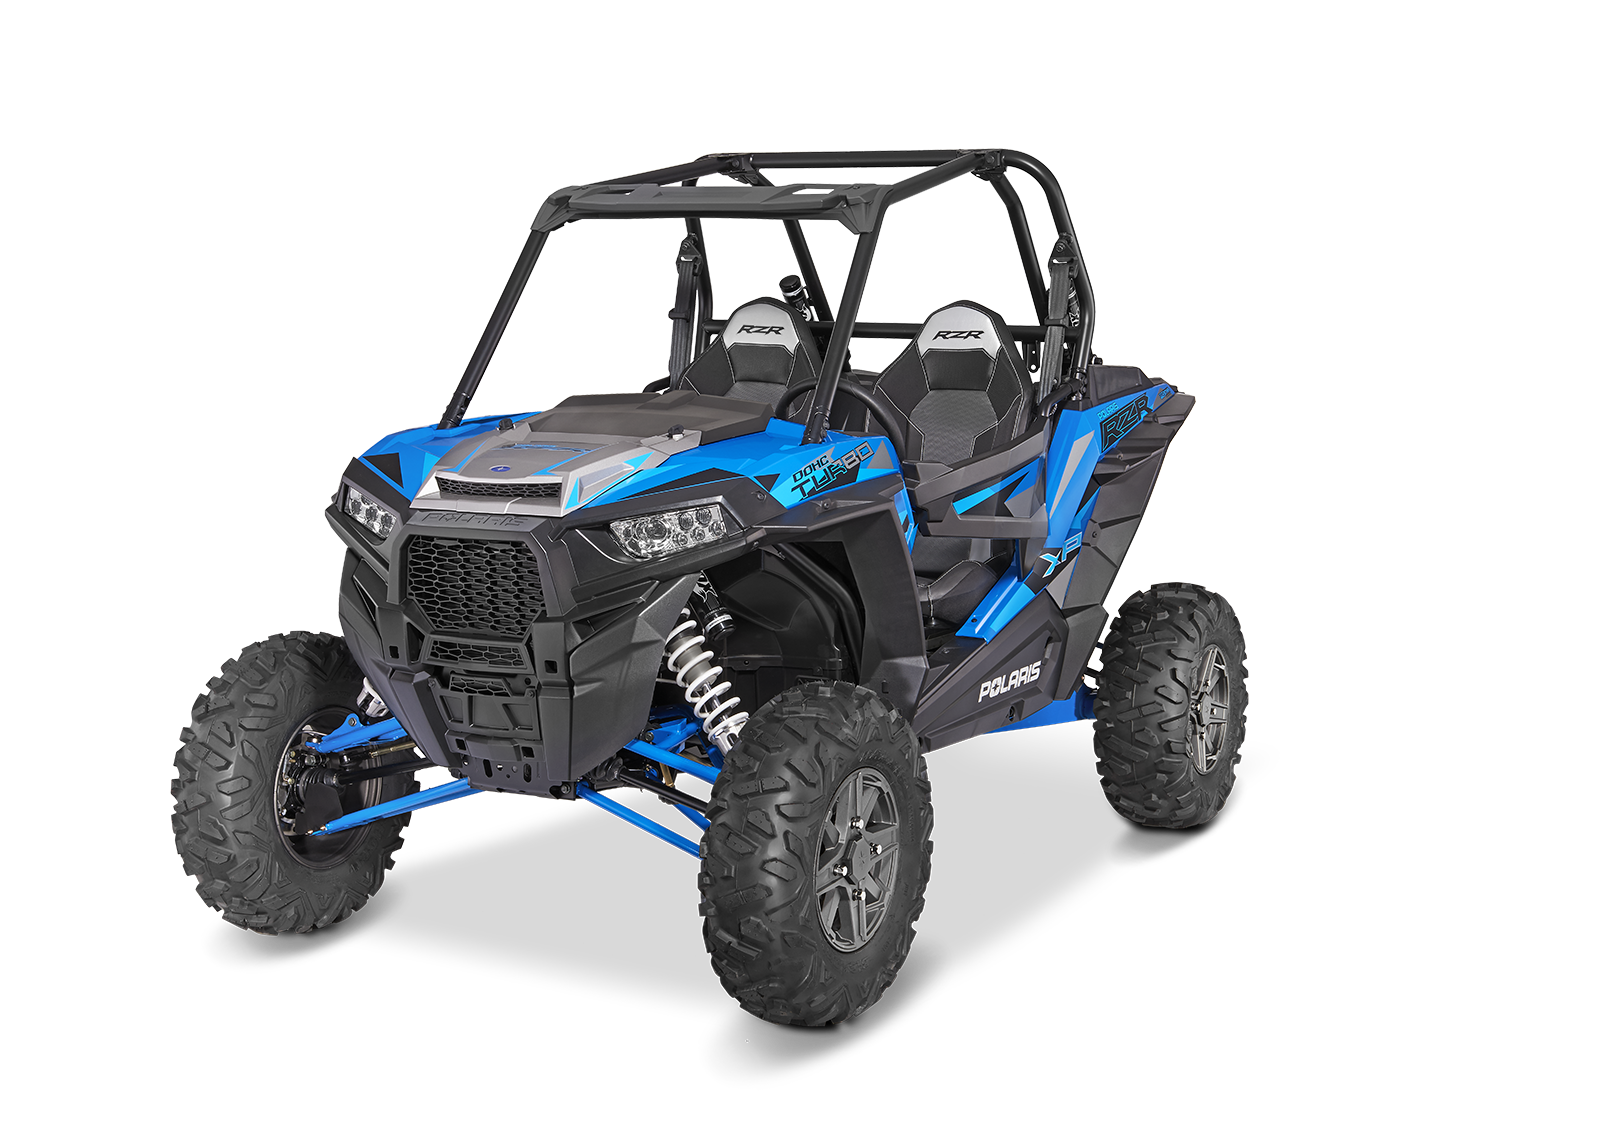 запчасти на квадроцикл arctic cat 1000